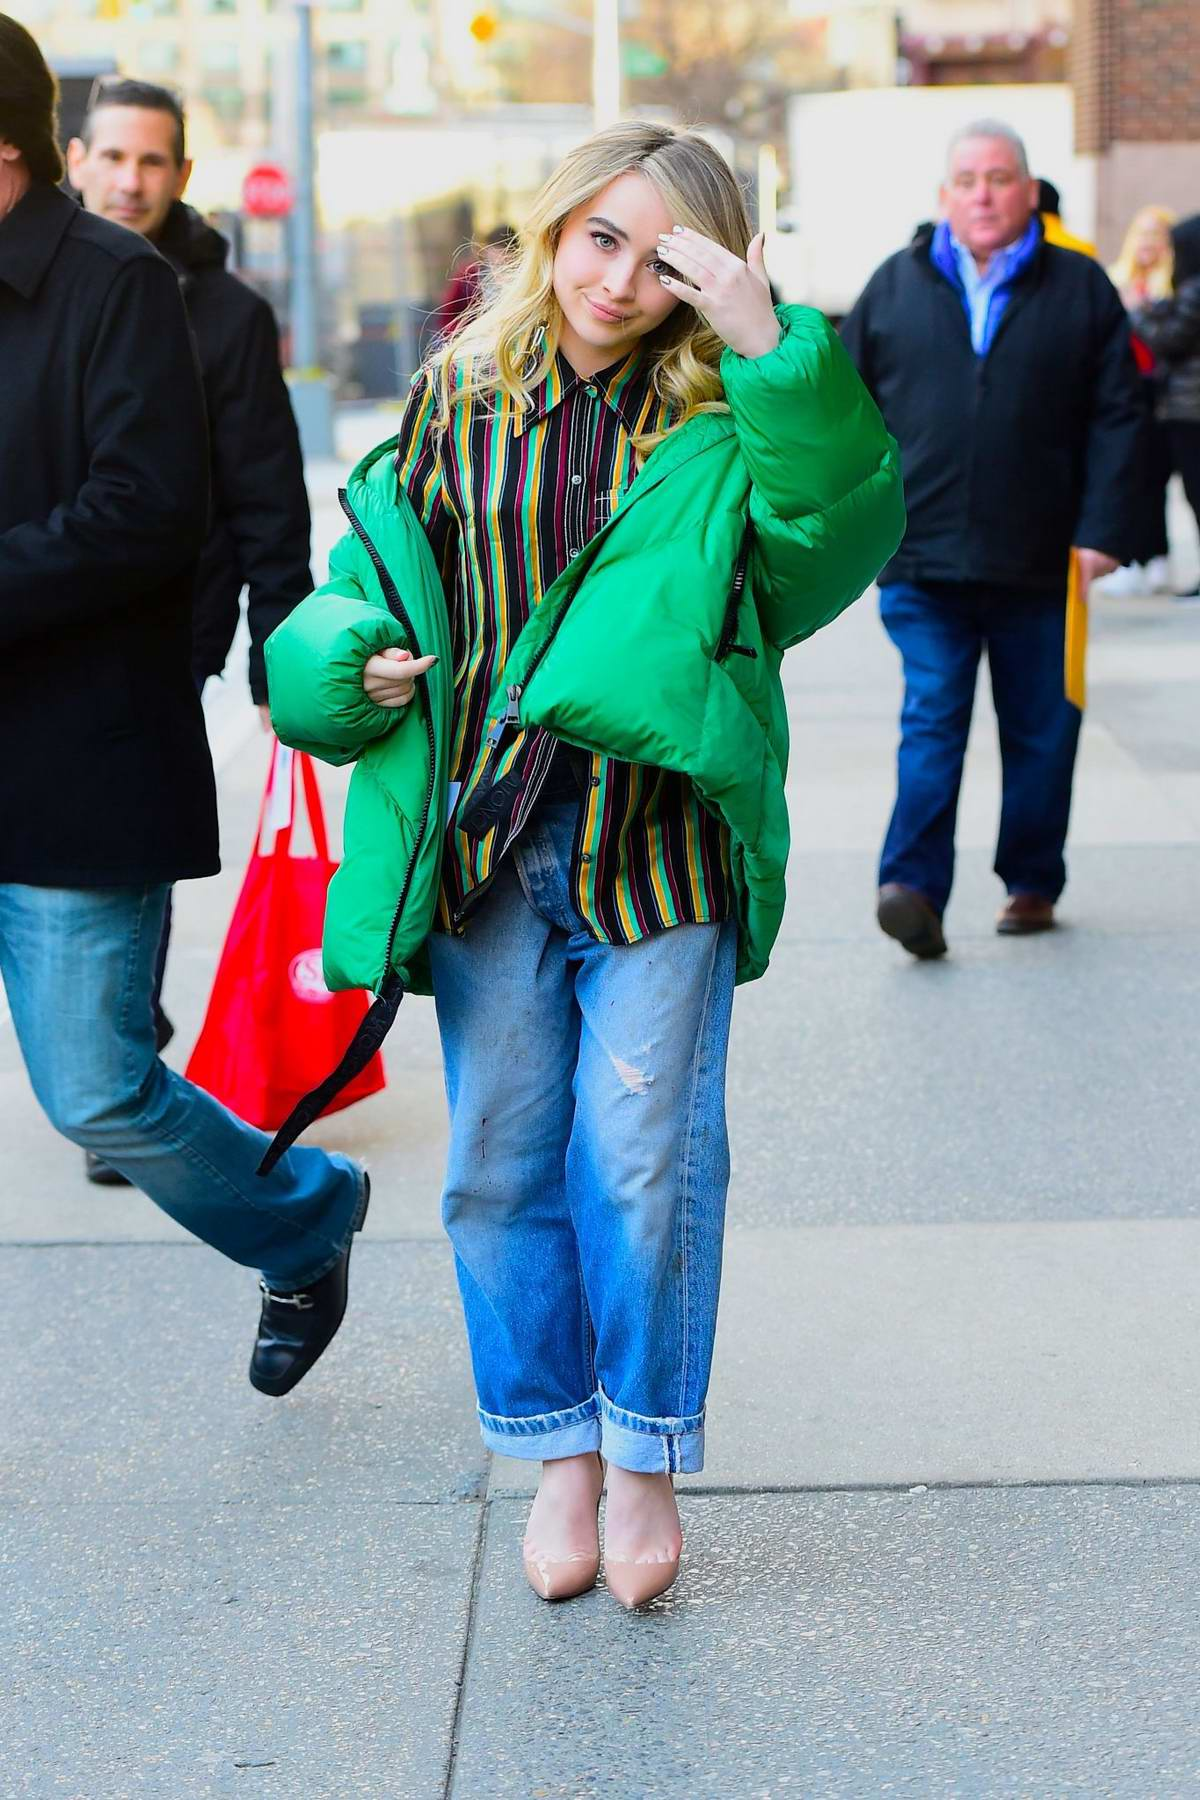 Sabrina Carpenter wears a green puffer jacket while out in New York City